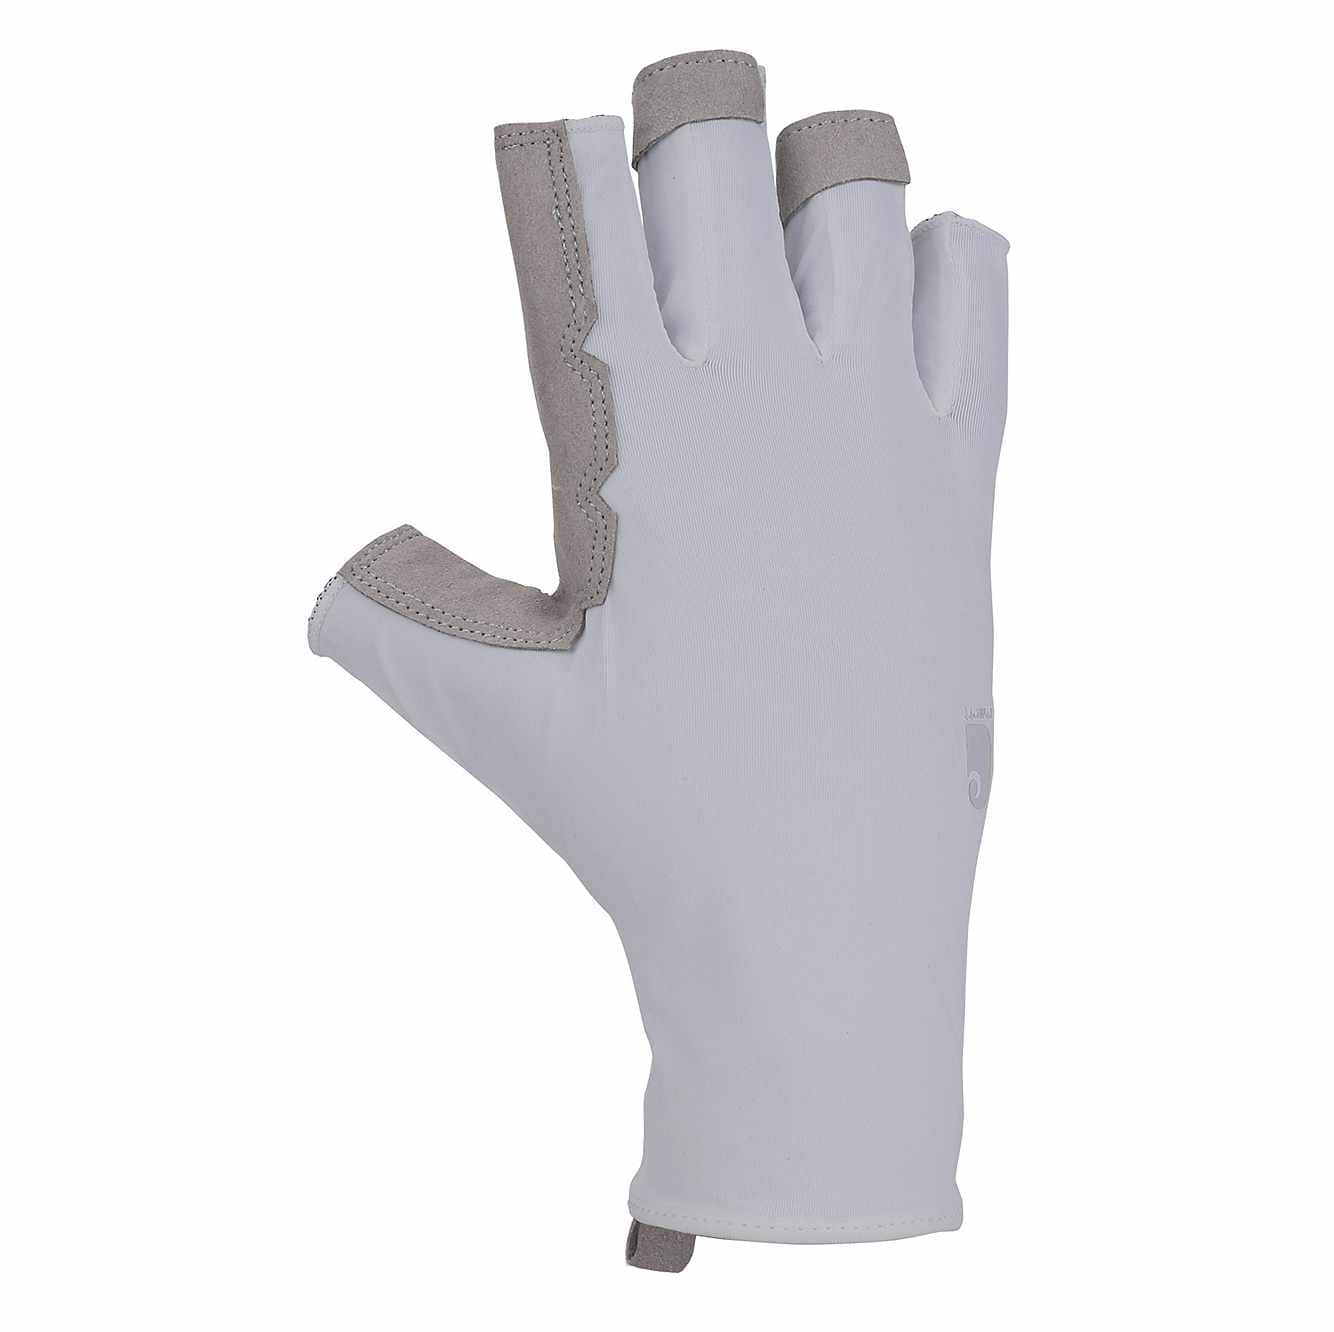 Picture of Solarguide High Dexterity Glove in Light Gray